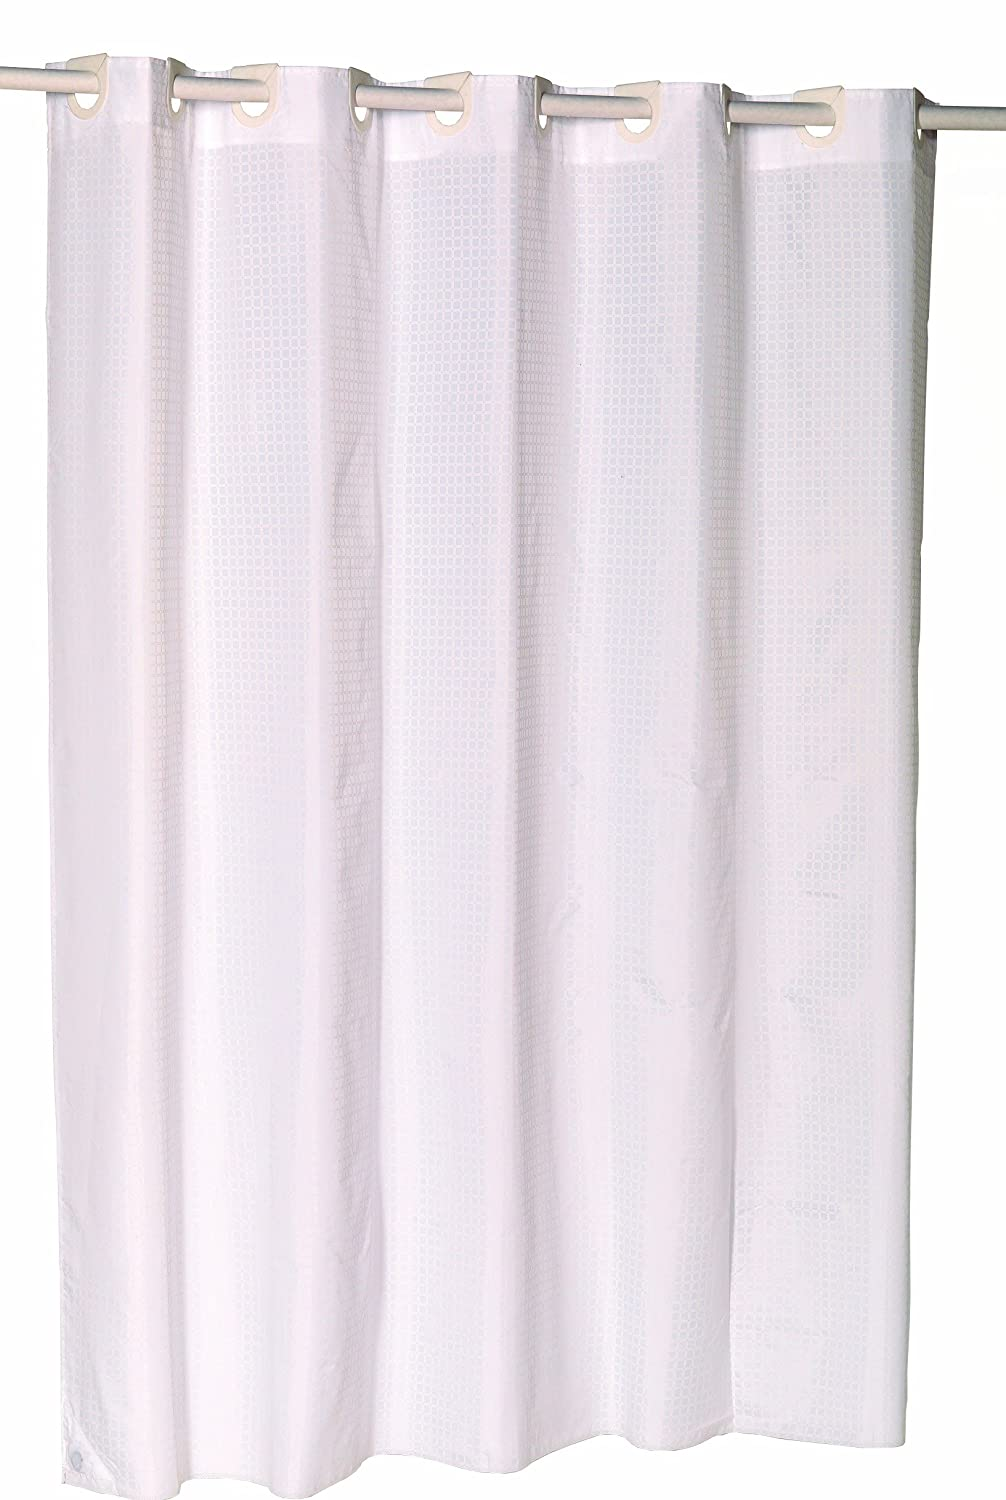 Amazon Carnation Home Fashions EZ On No Hooks Needed 70 By 84 Inch Fabric Shower Curtain X Long Checks In White Kitchen